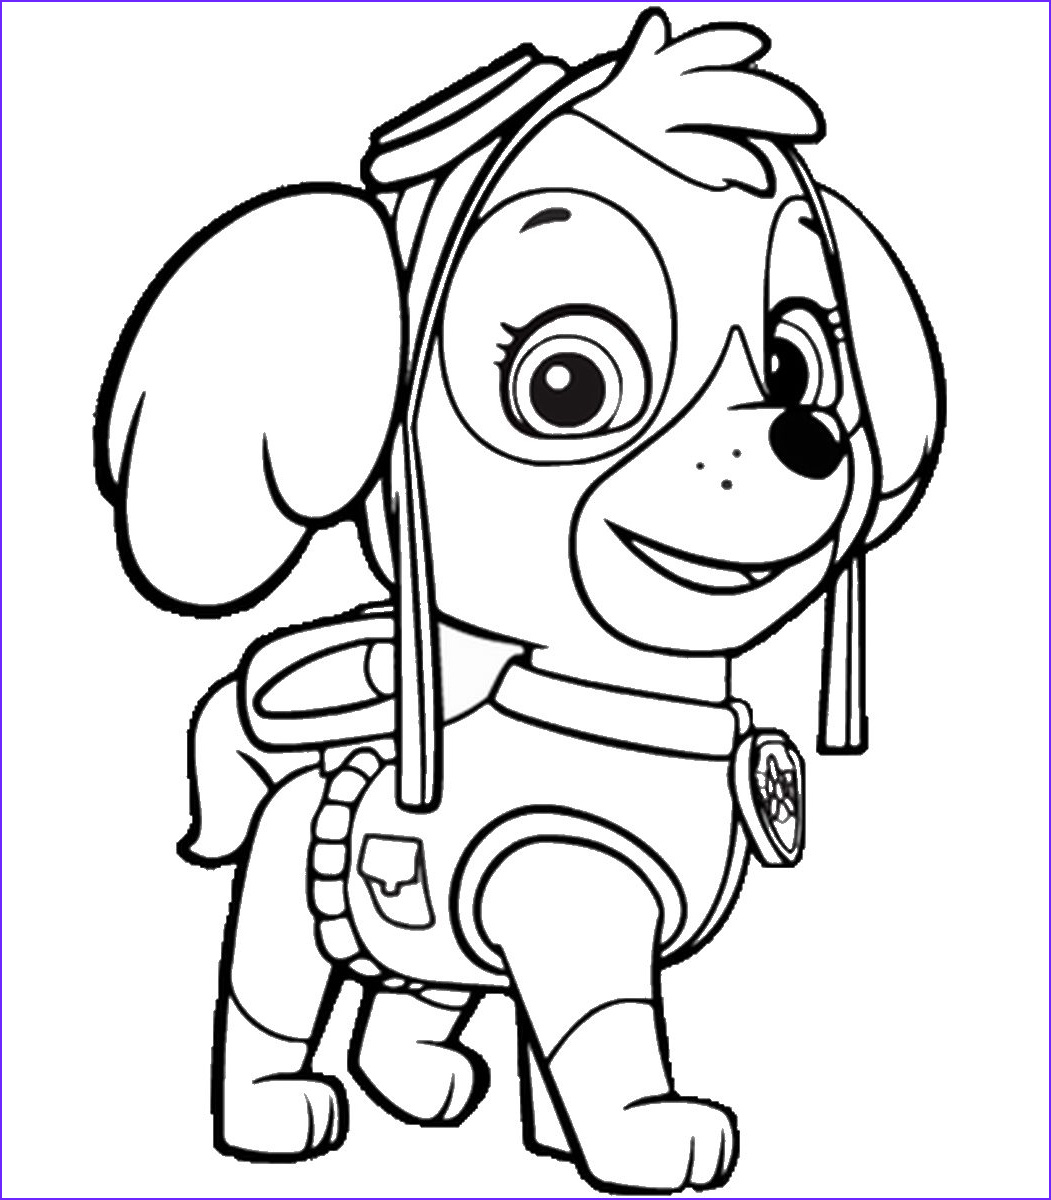 Coloring Paw Patrol Awesome Photos Paw Patrol Coloring Pages